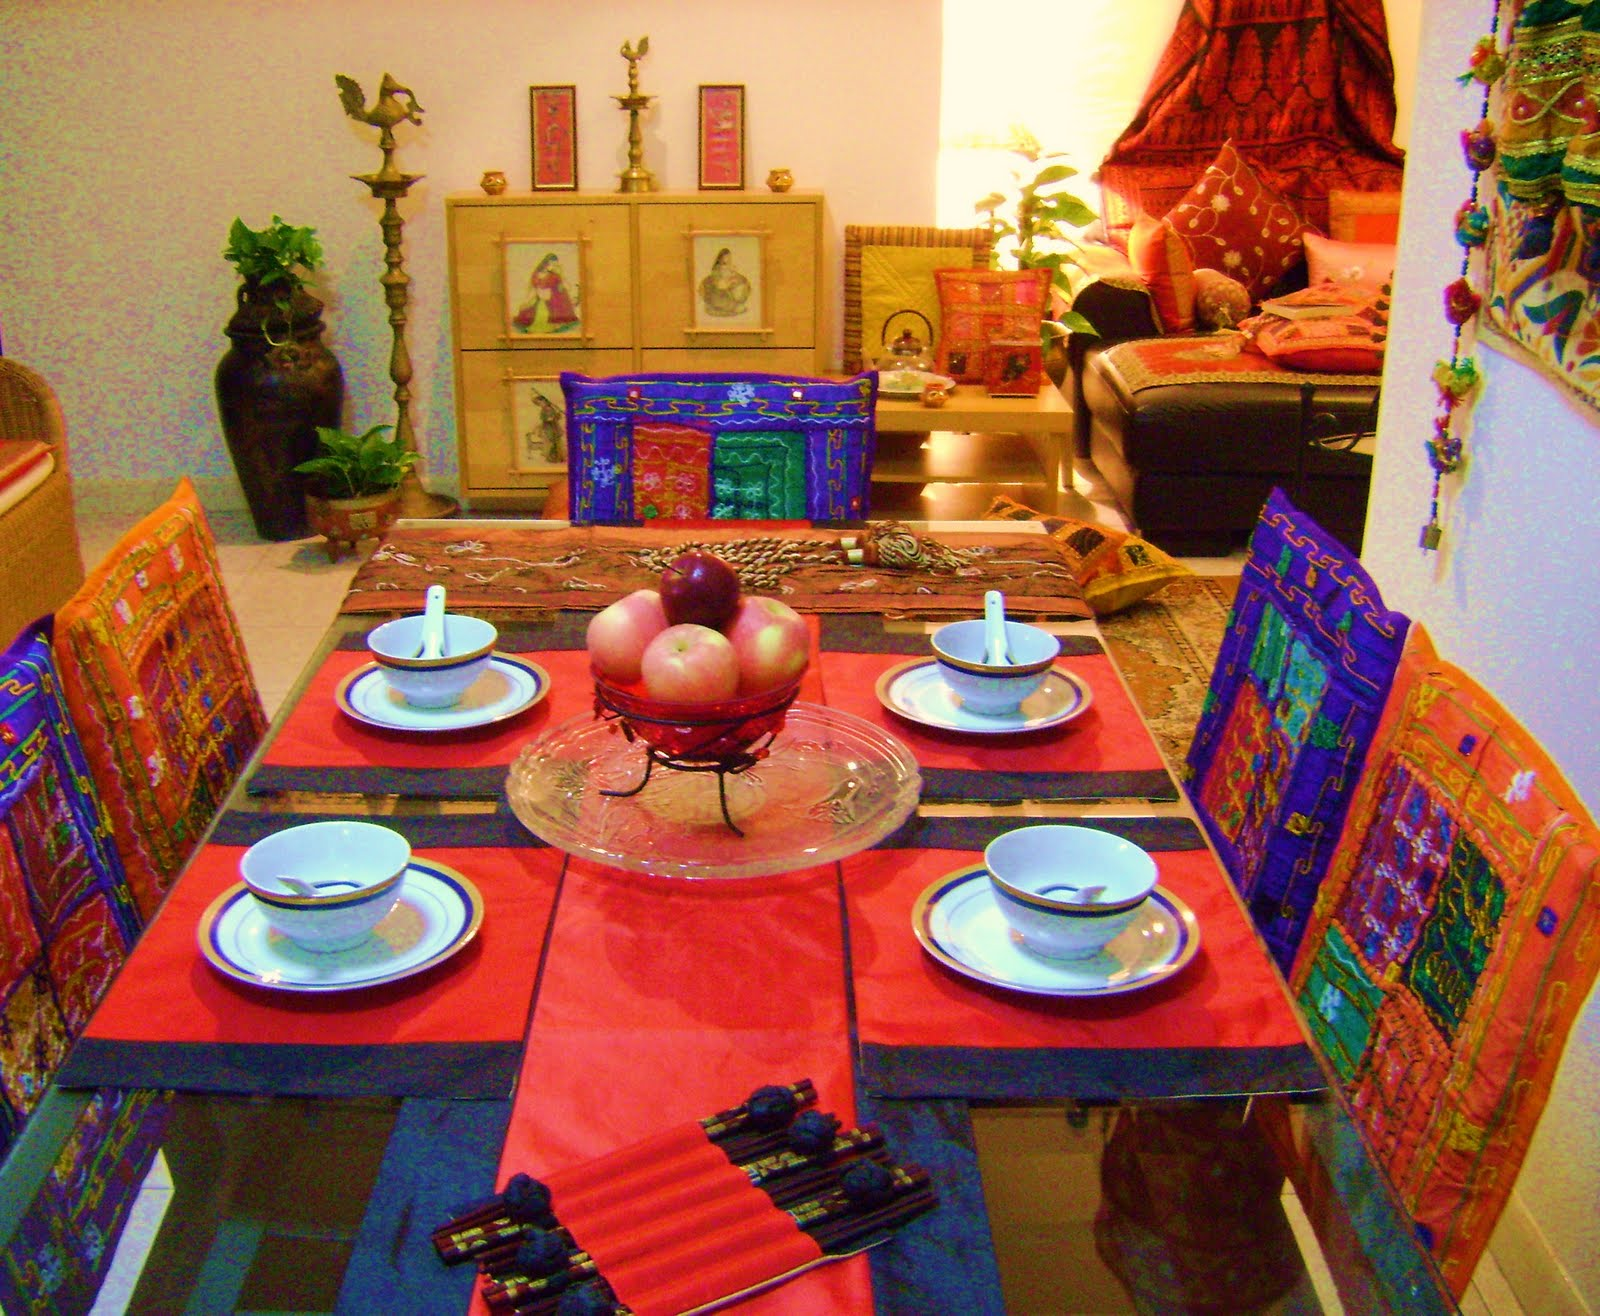 Home Design Ideas India: Ethnic Indian Decor: An Ethnic Indian Home In Singapore